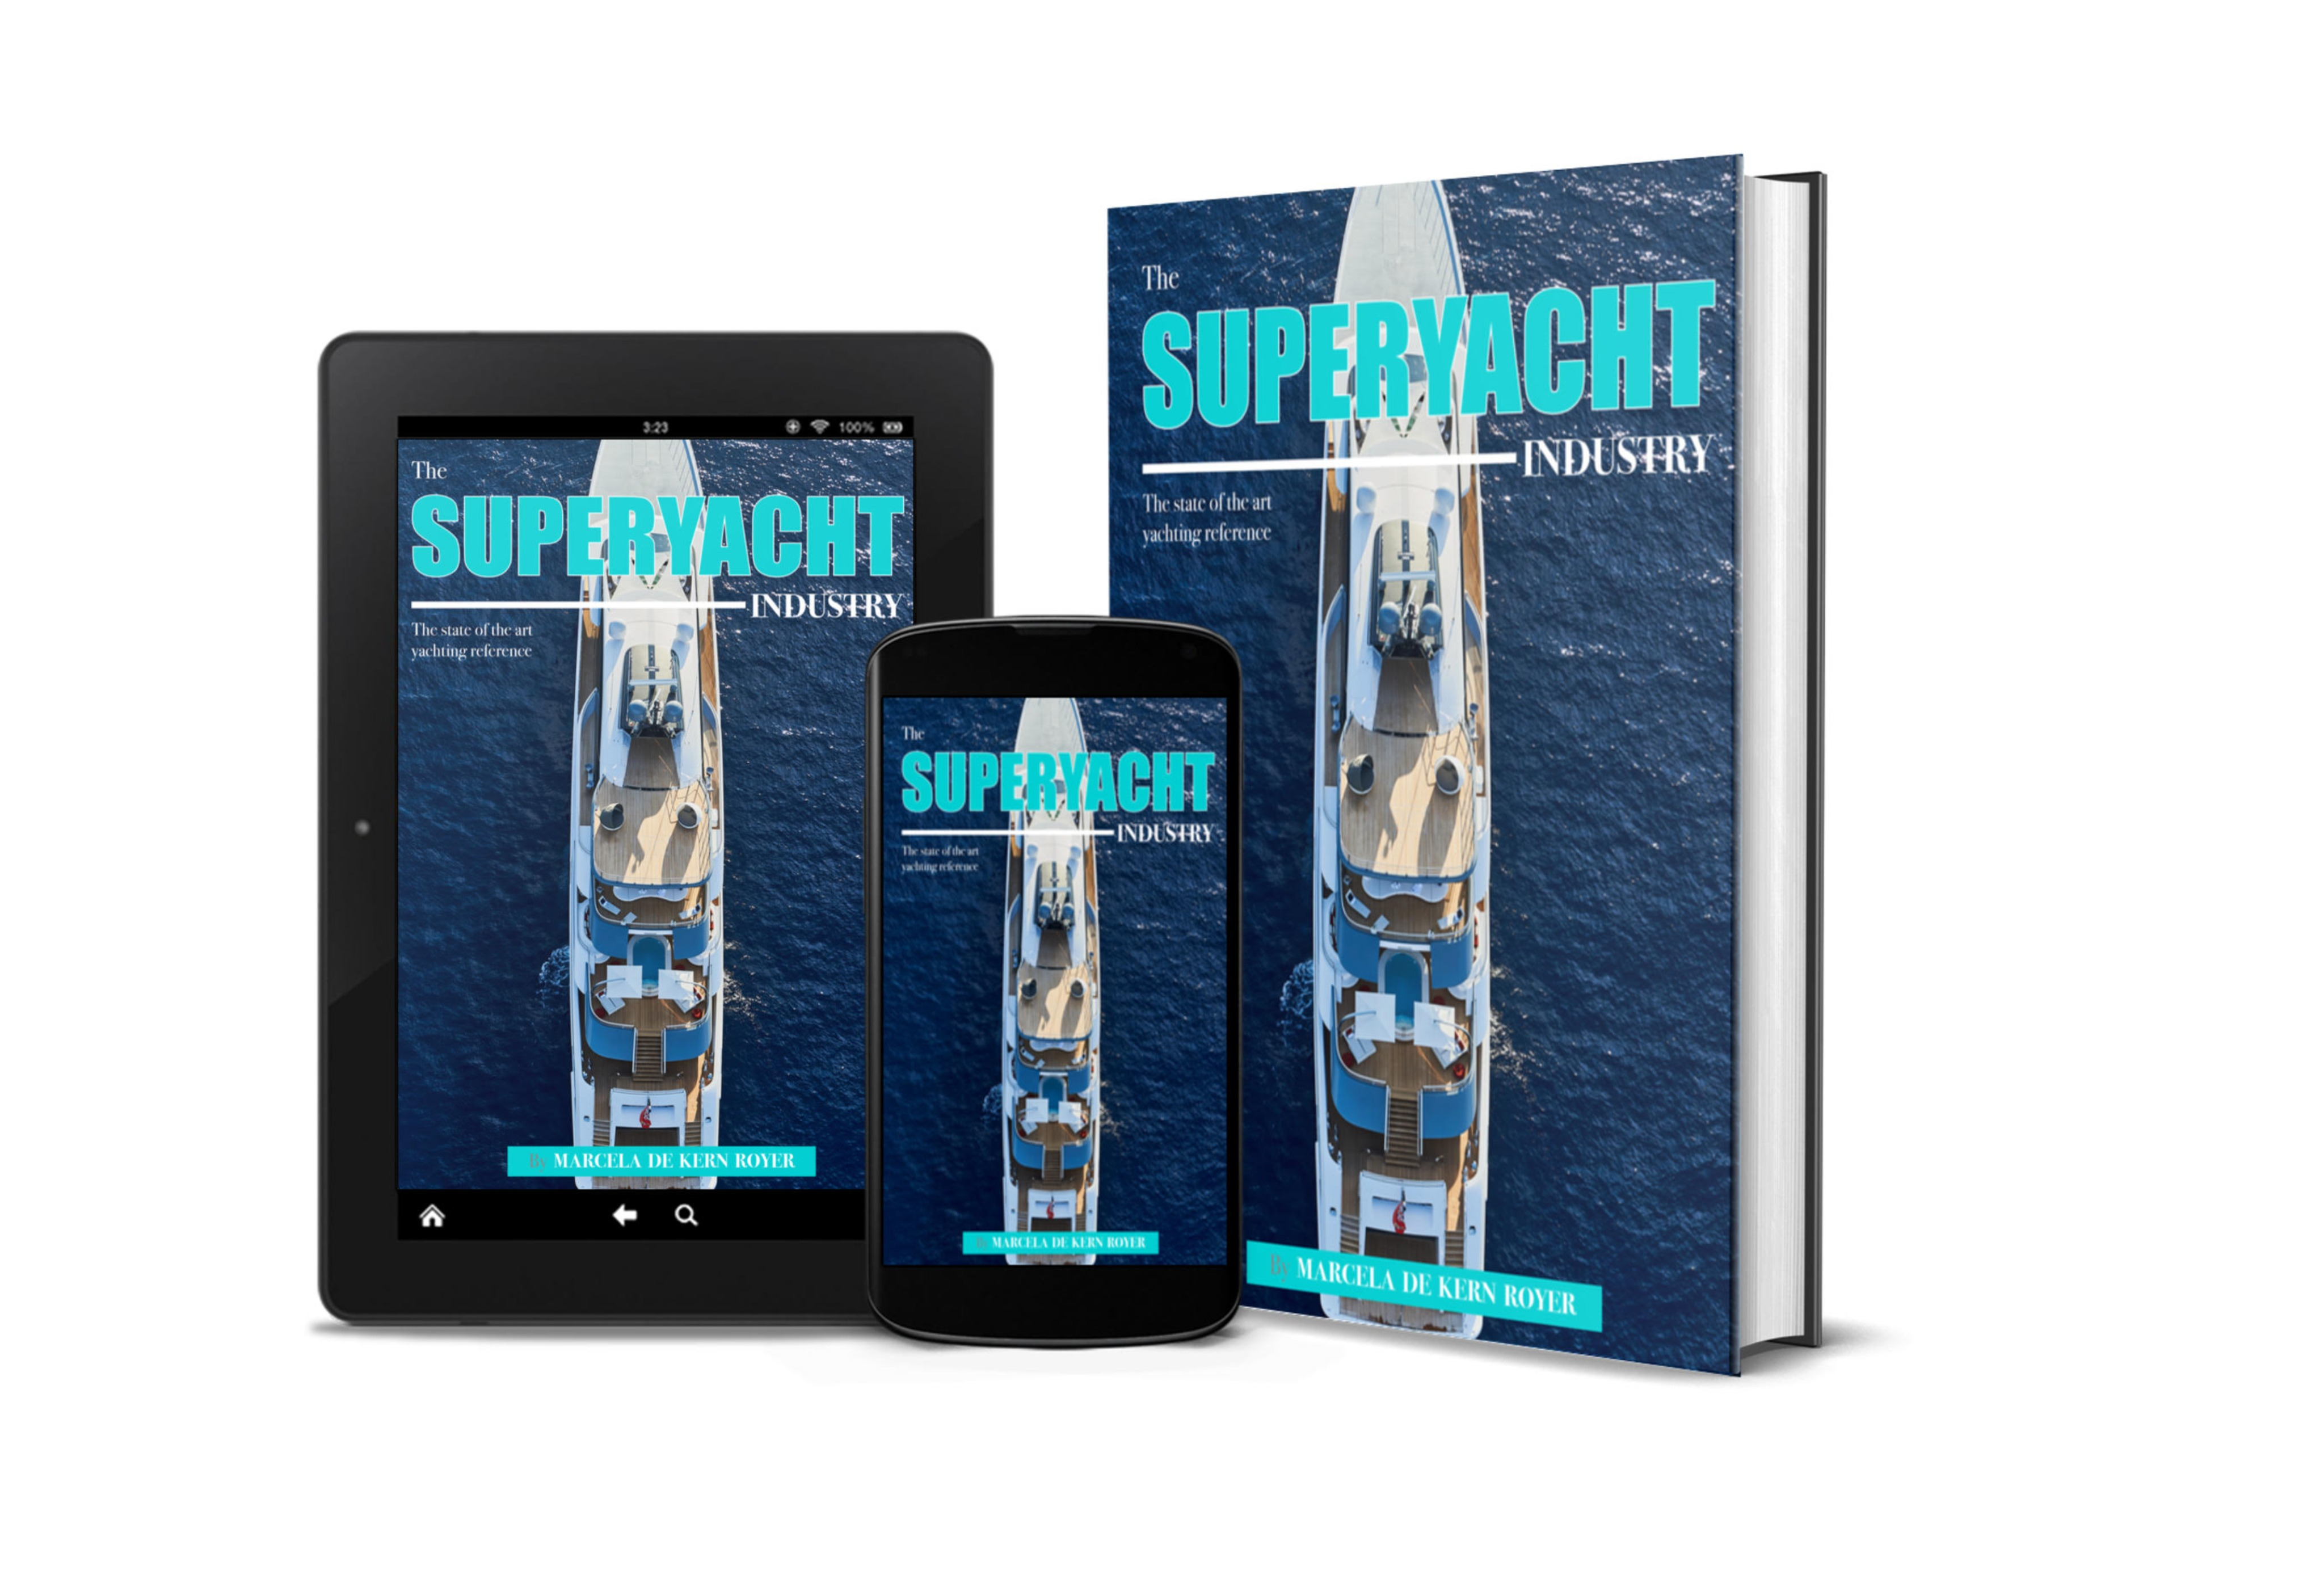 The Superyacht Industry BOOK